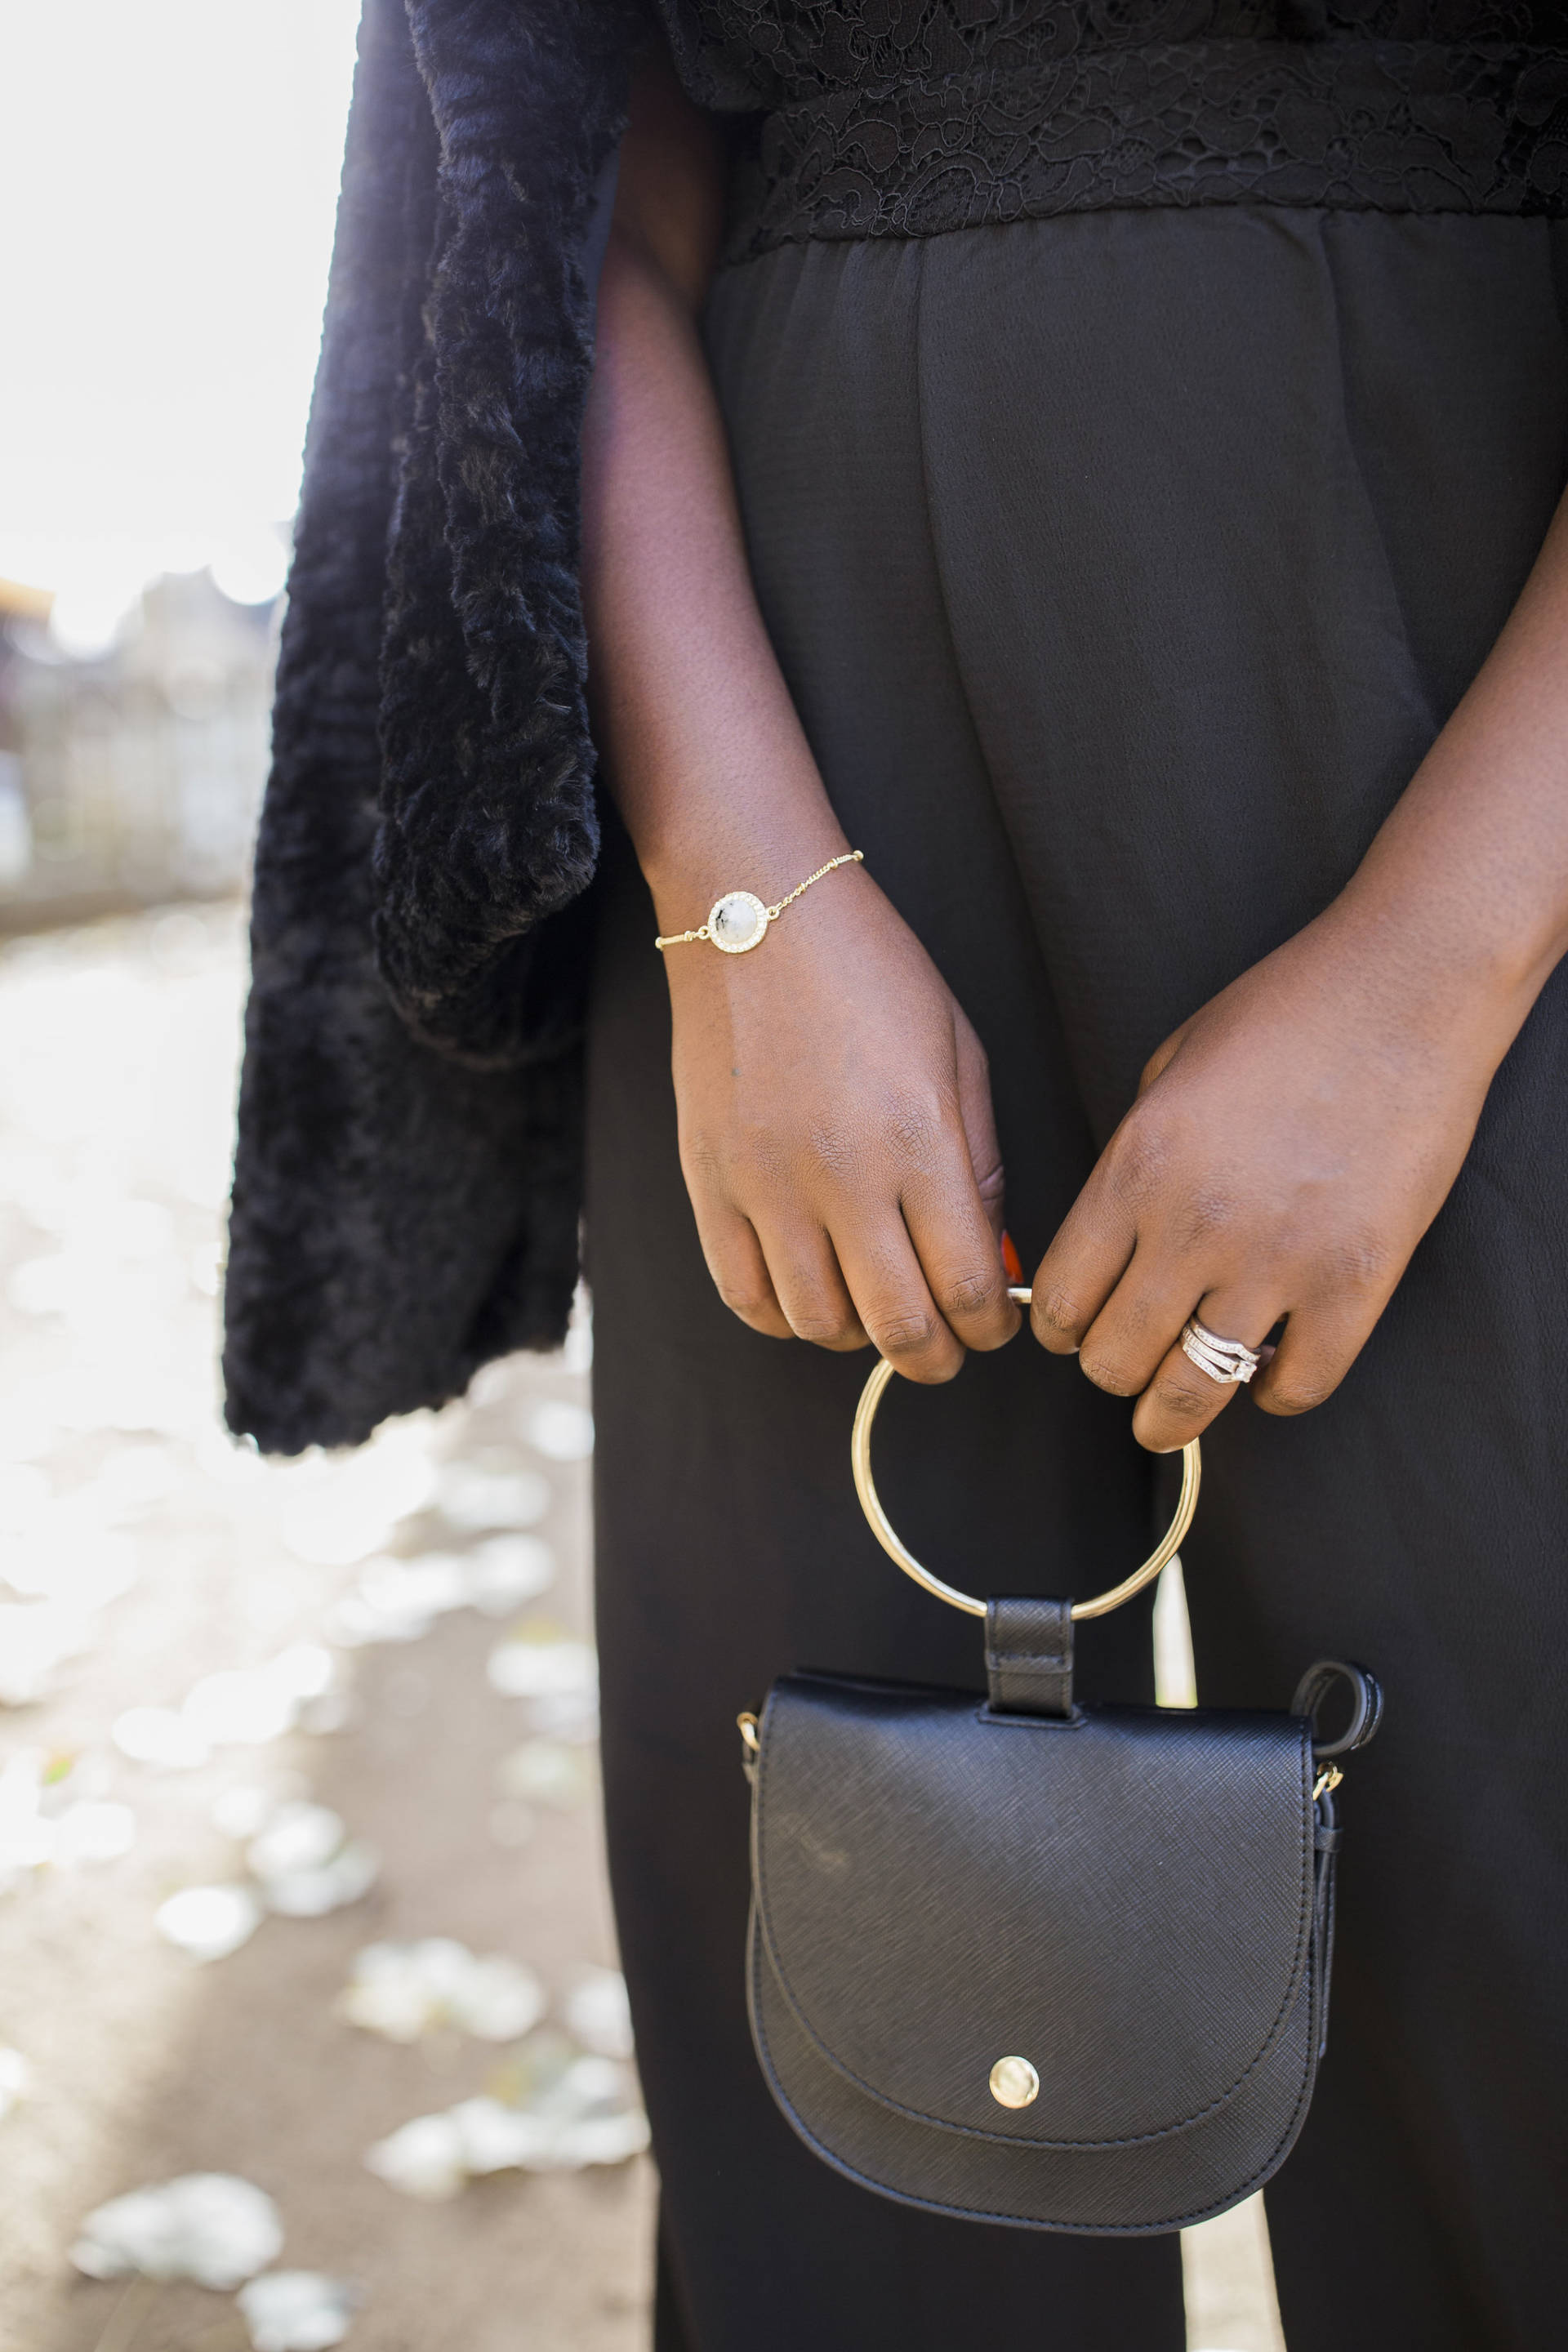 2 perfect ways to accessorize your Holiday look with elegance and style, featuring 7 Charming Sisters. Beautiful Jewels at an affordable price!